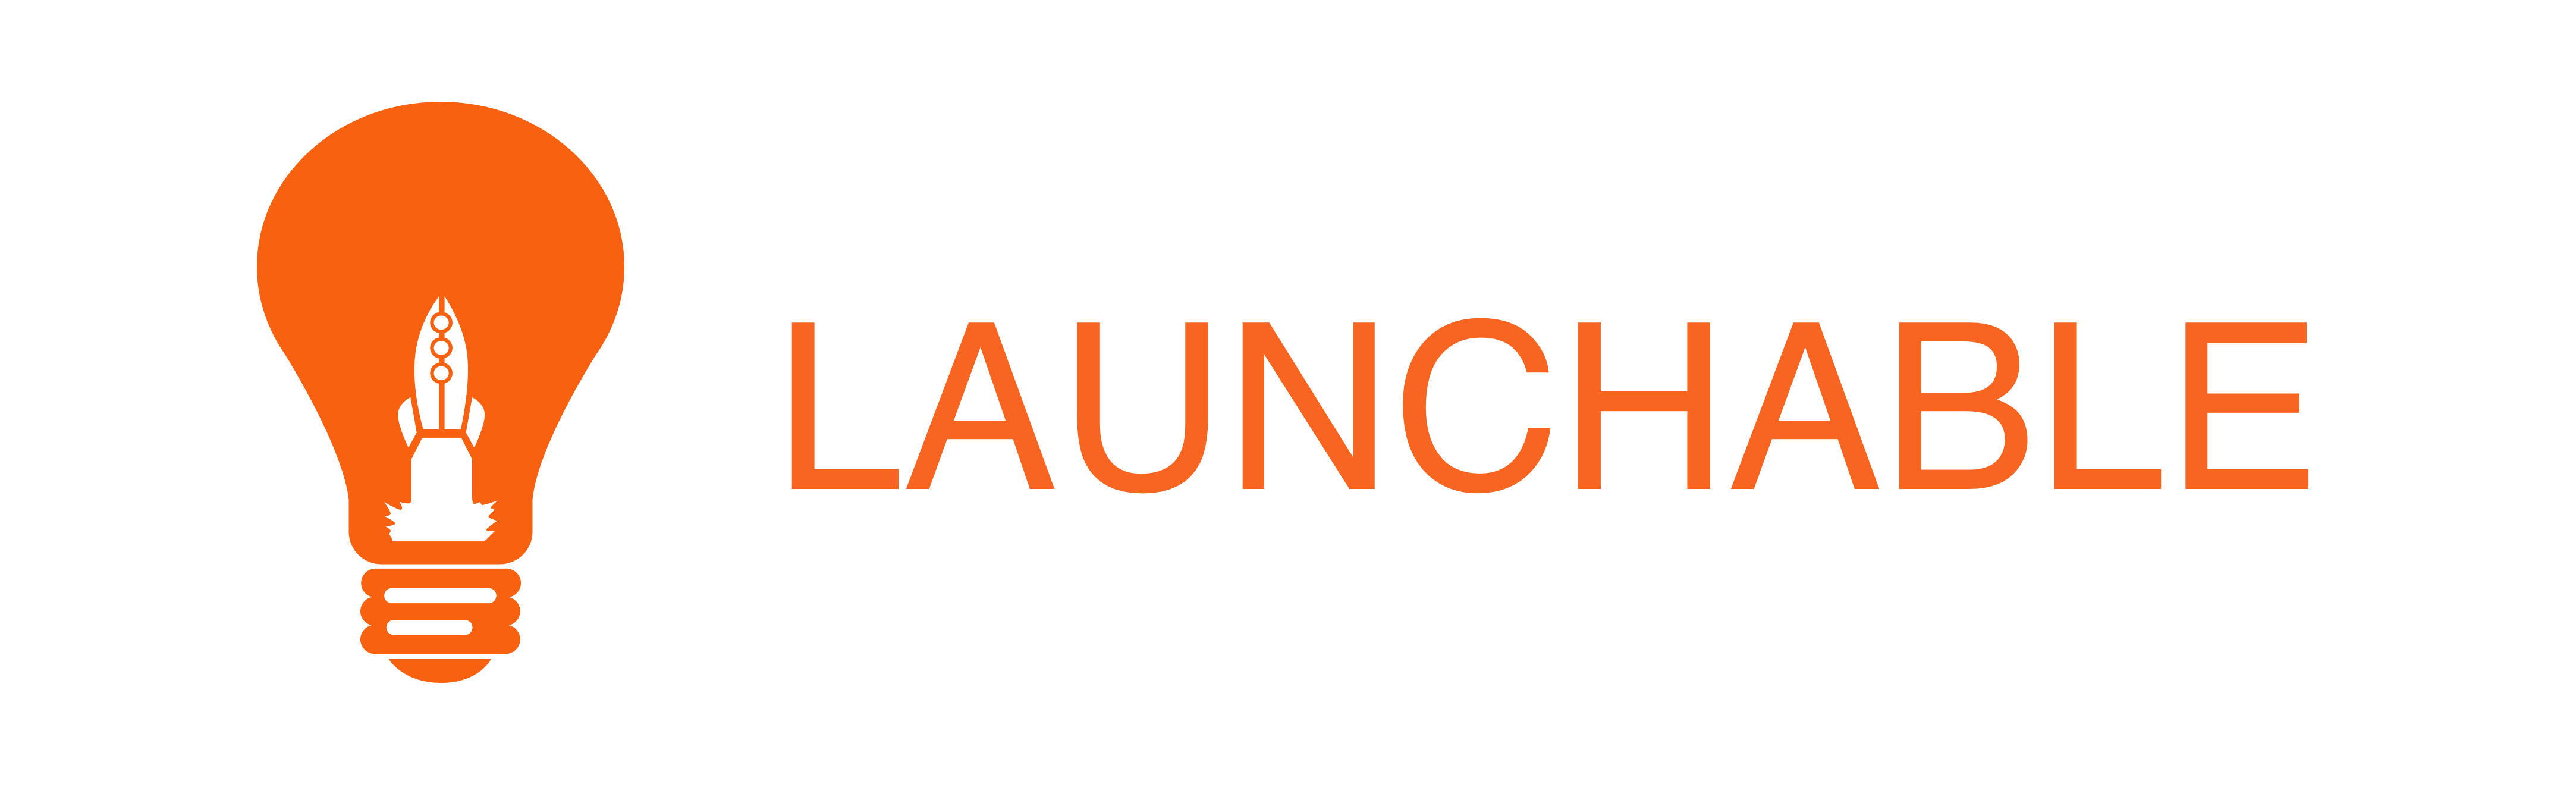 Launchable